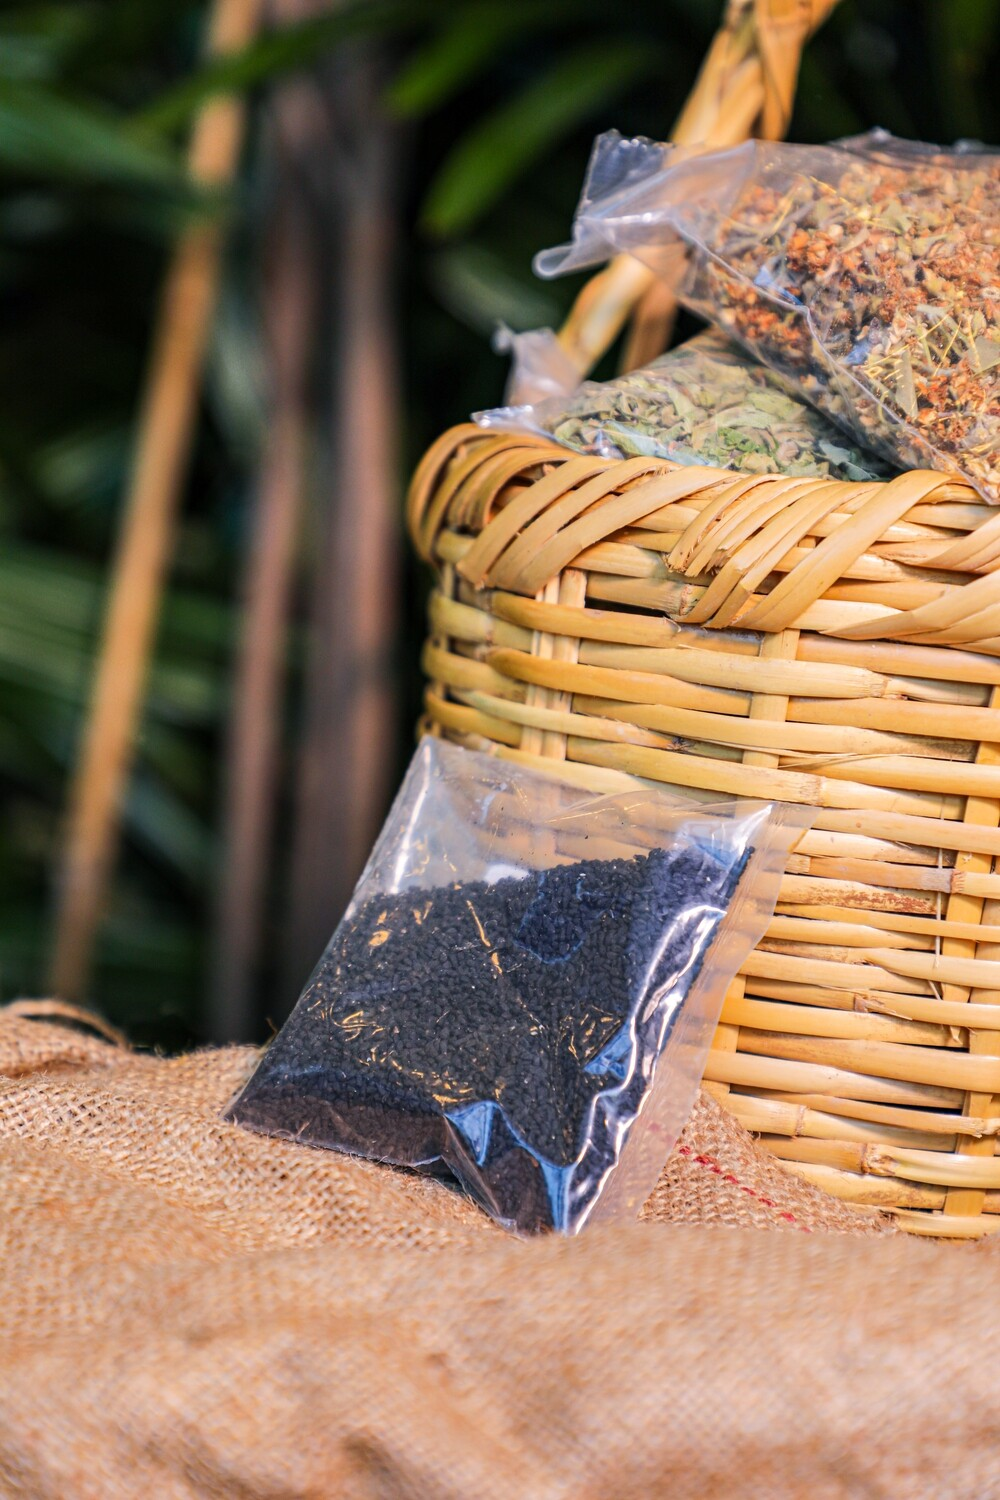 Black Seeds (Nigella sativa) (Bag) - Nature by Marc Beyrouthy